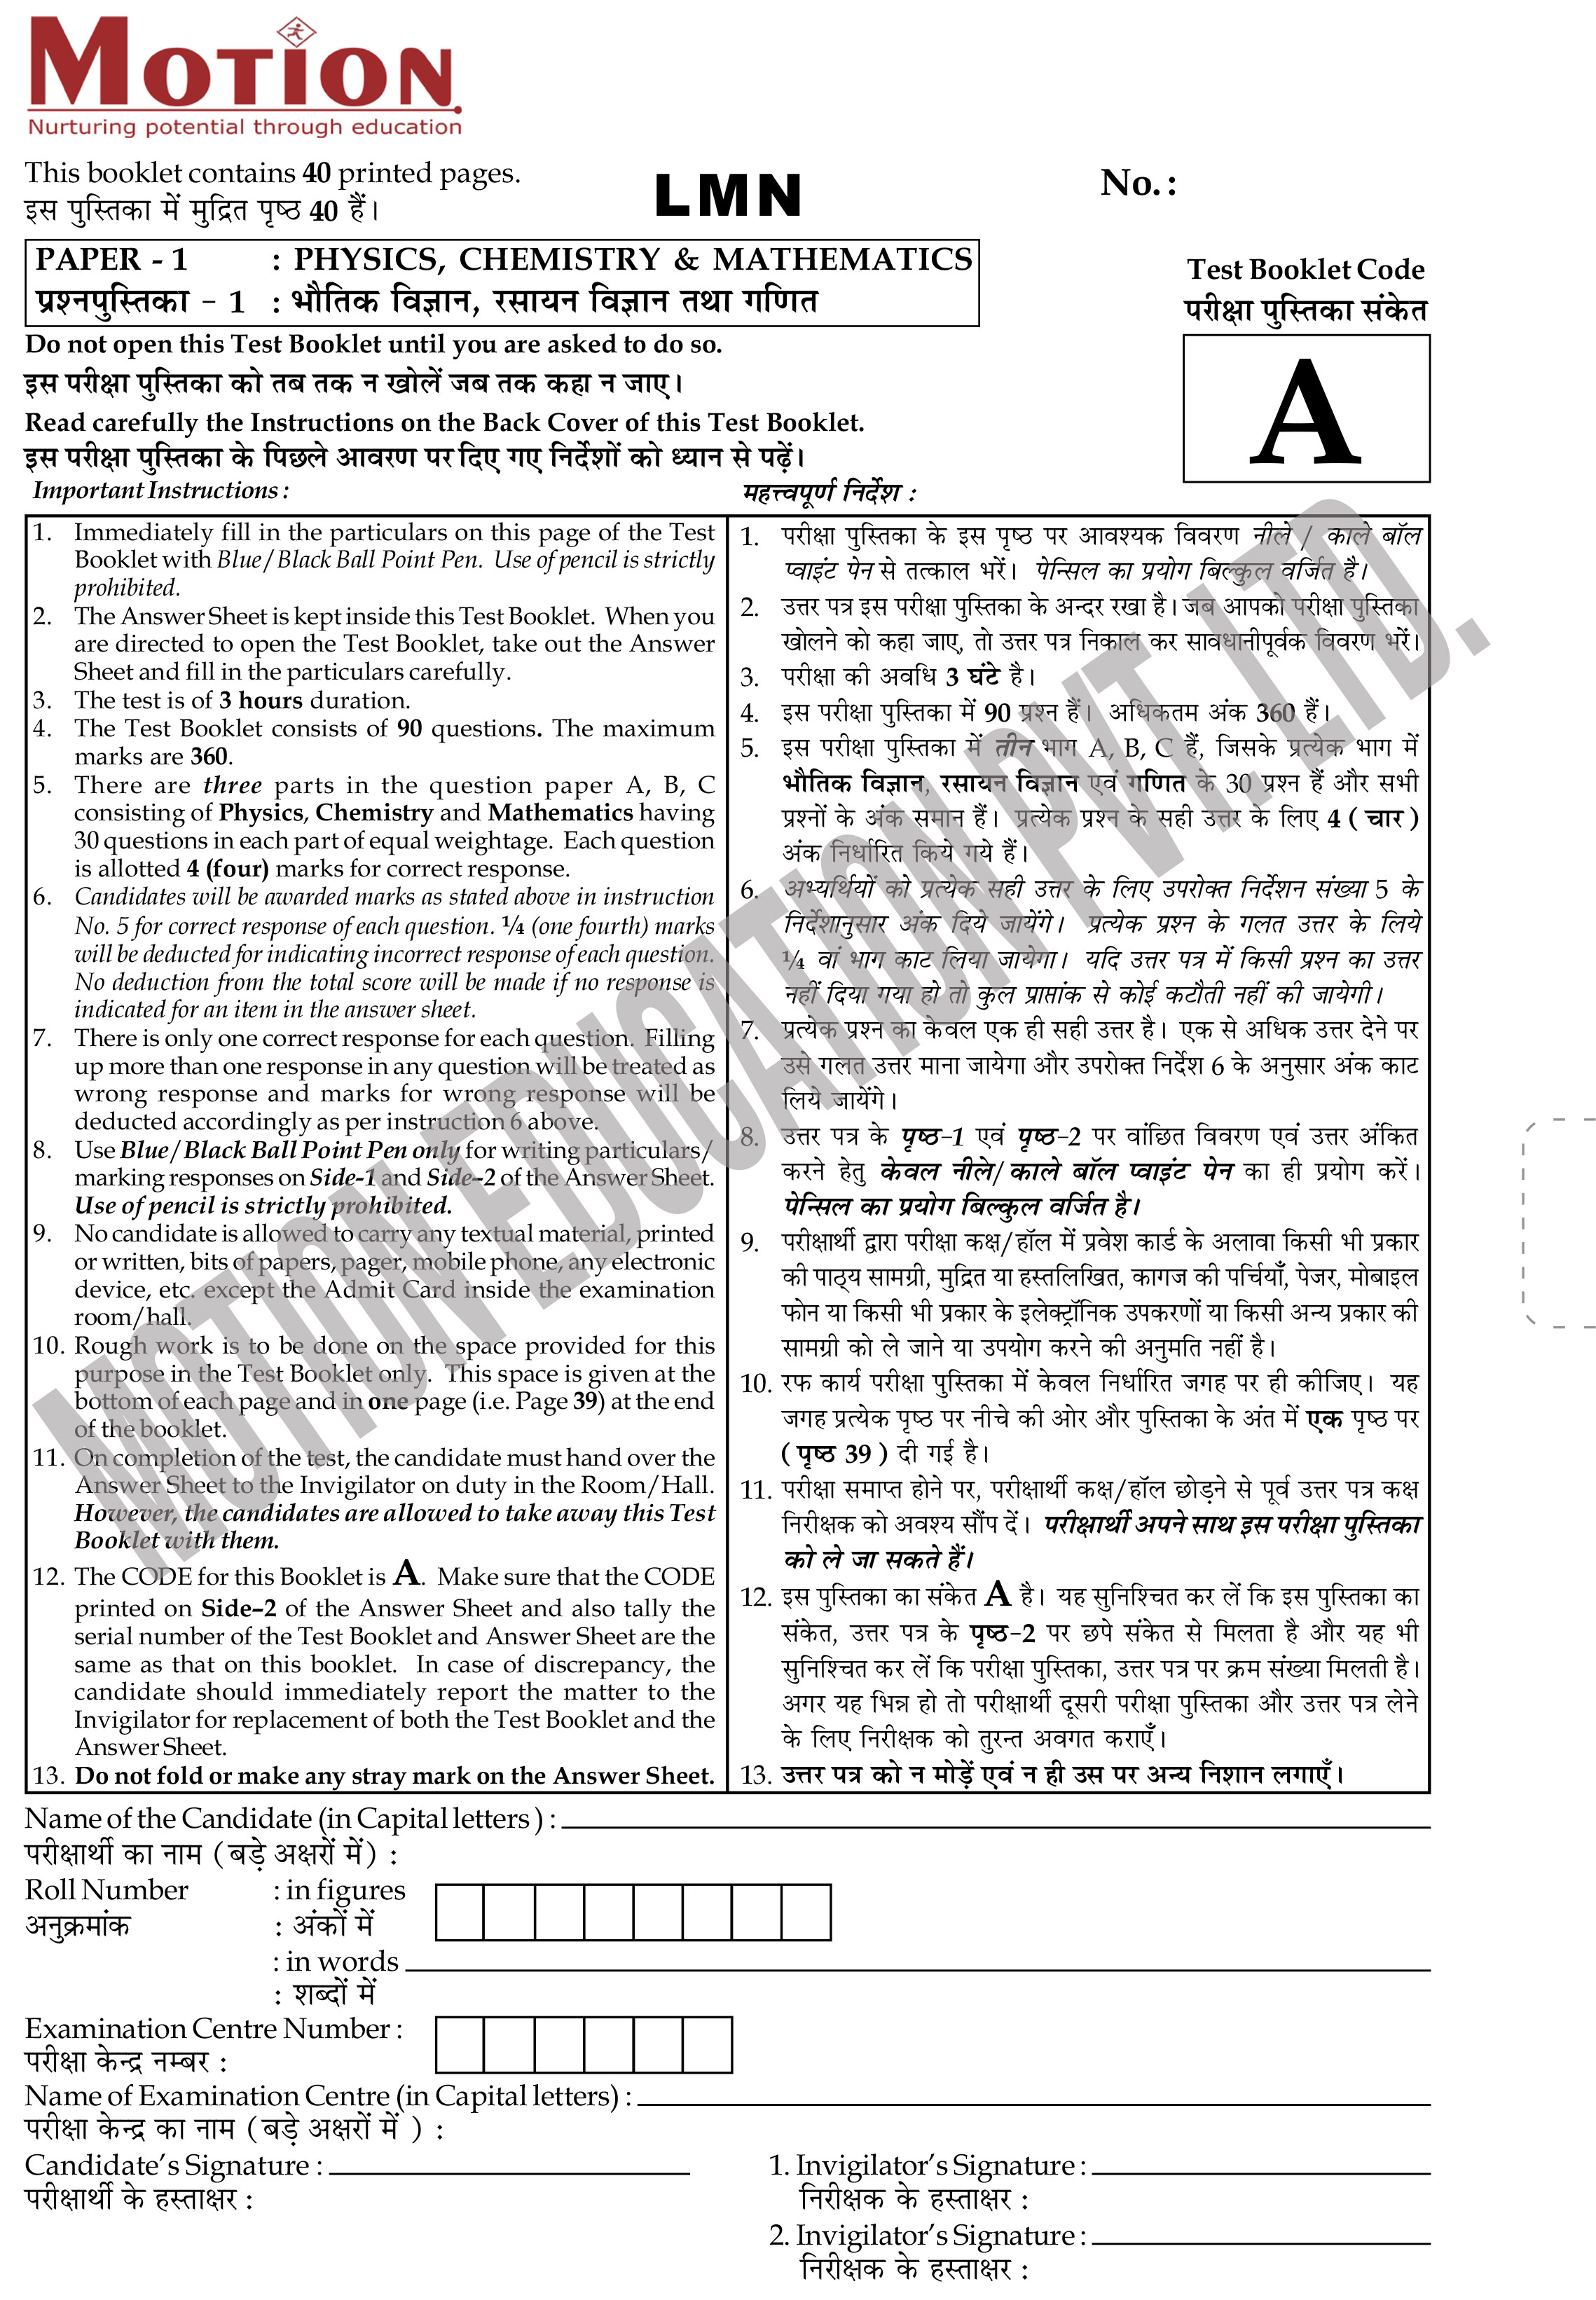 Jee online exam date in Perth